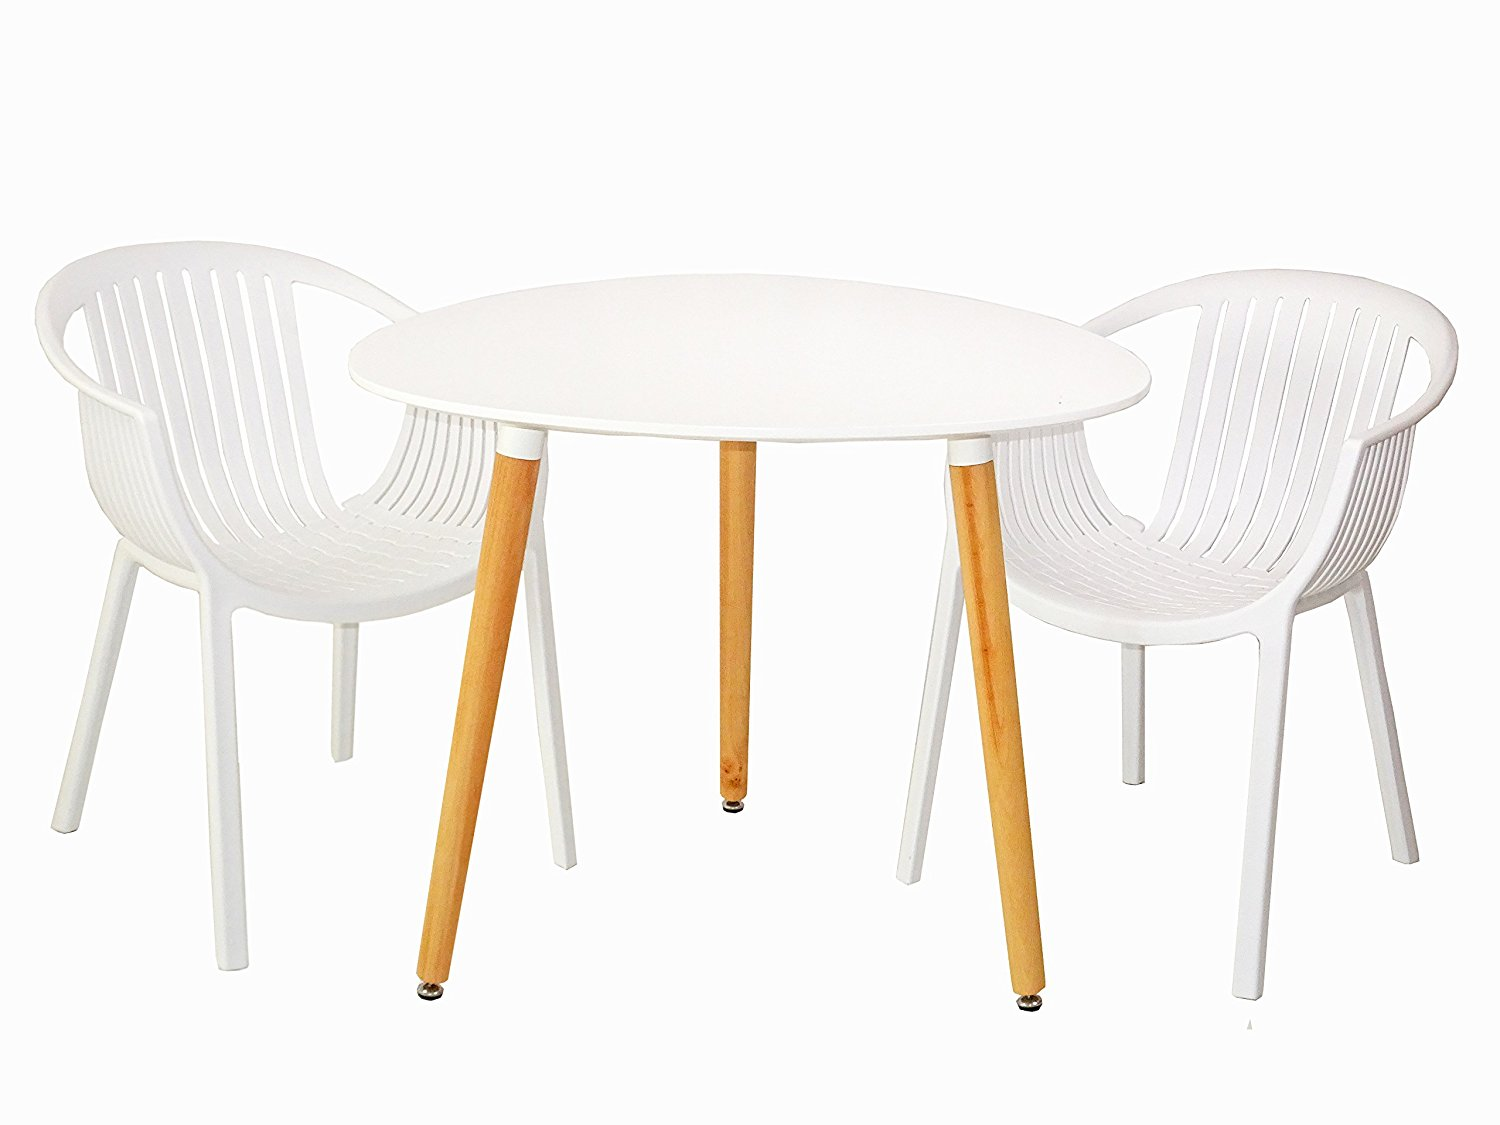 Plastic Dining Chairs Buy Shell Plastic Dining Chair In Usa Best Price Free